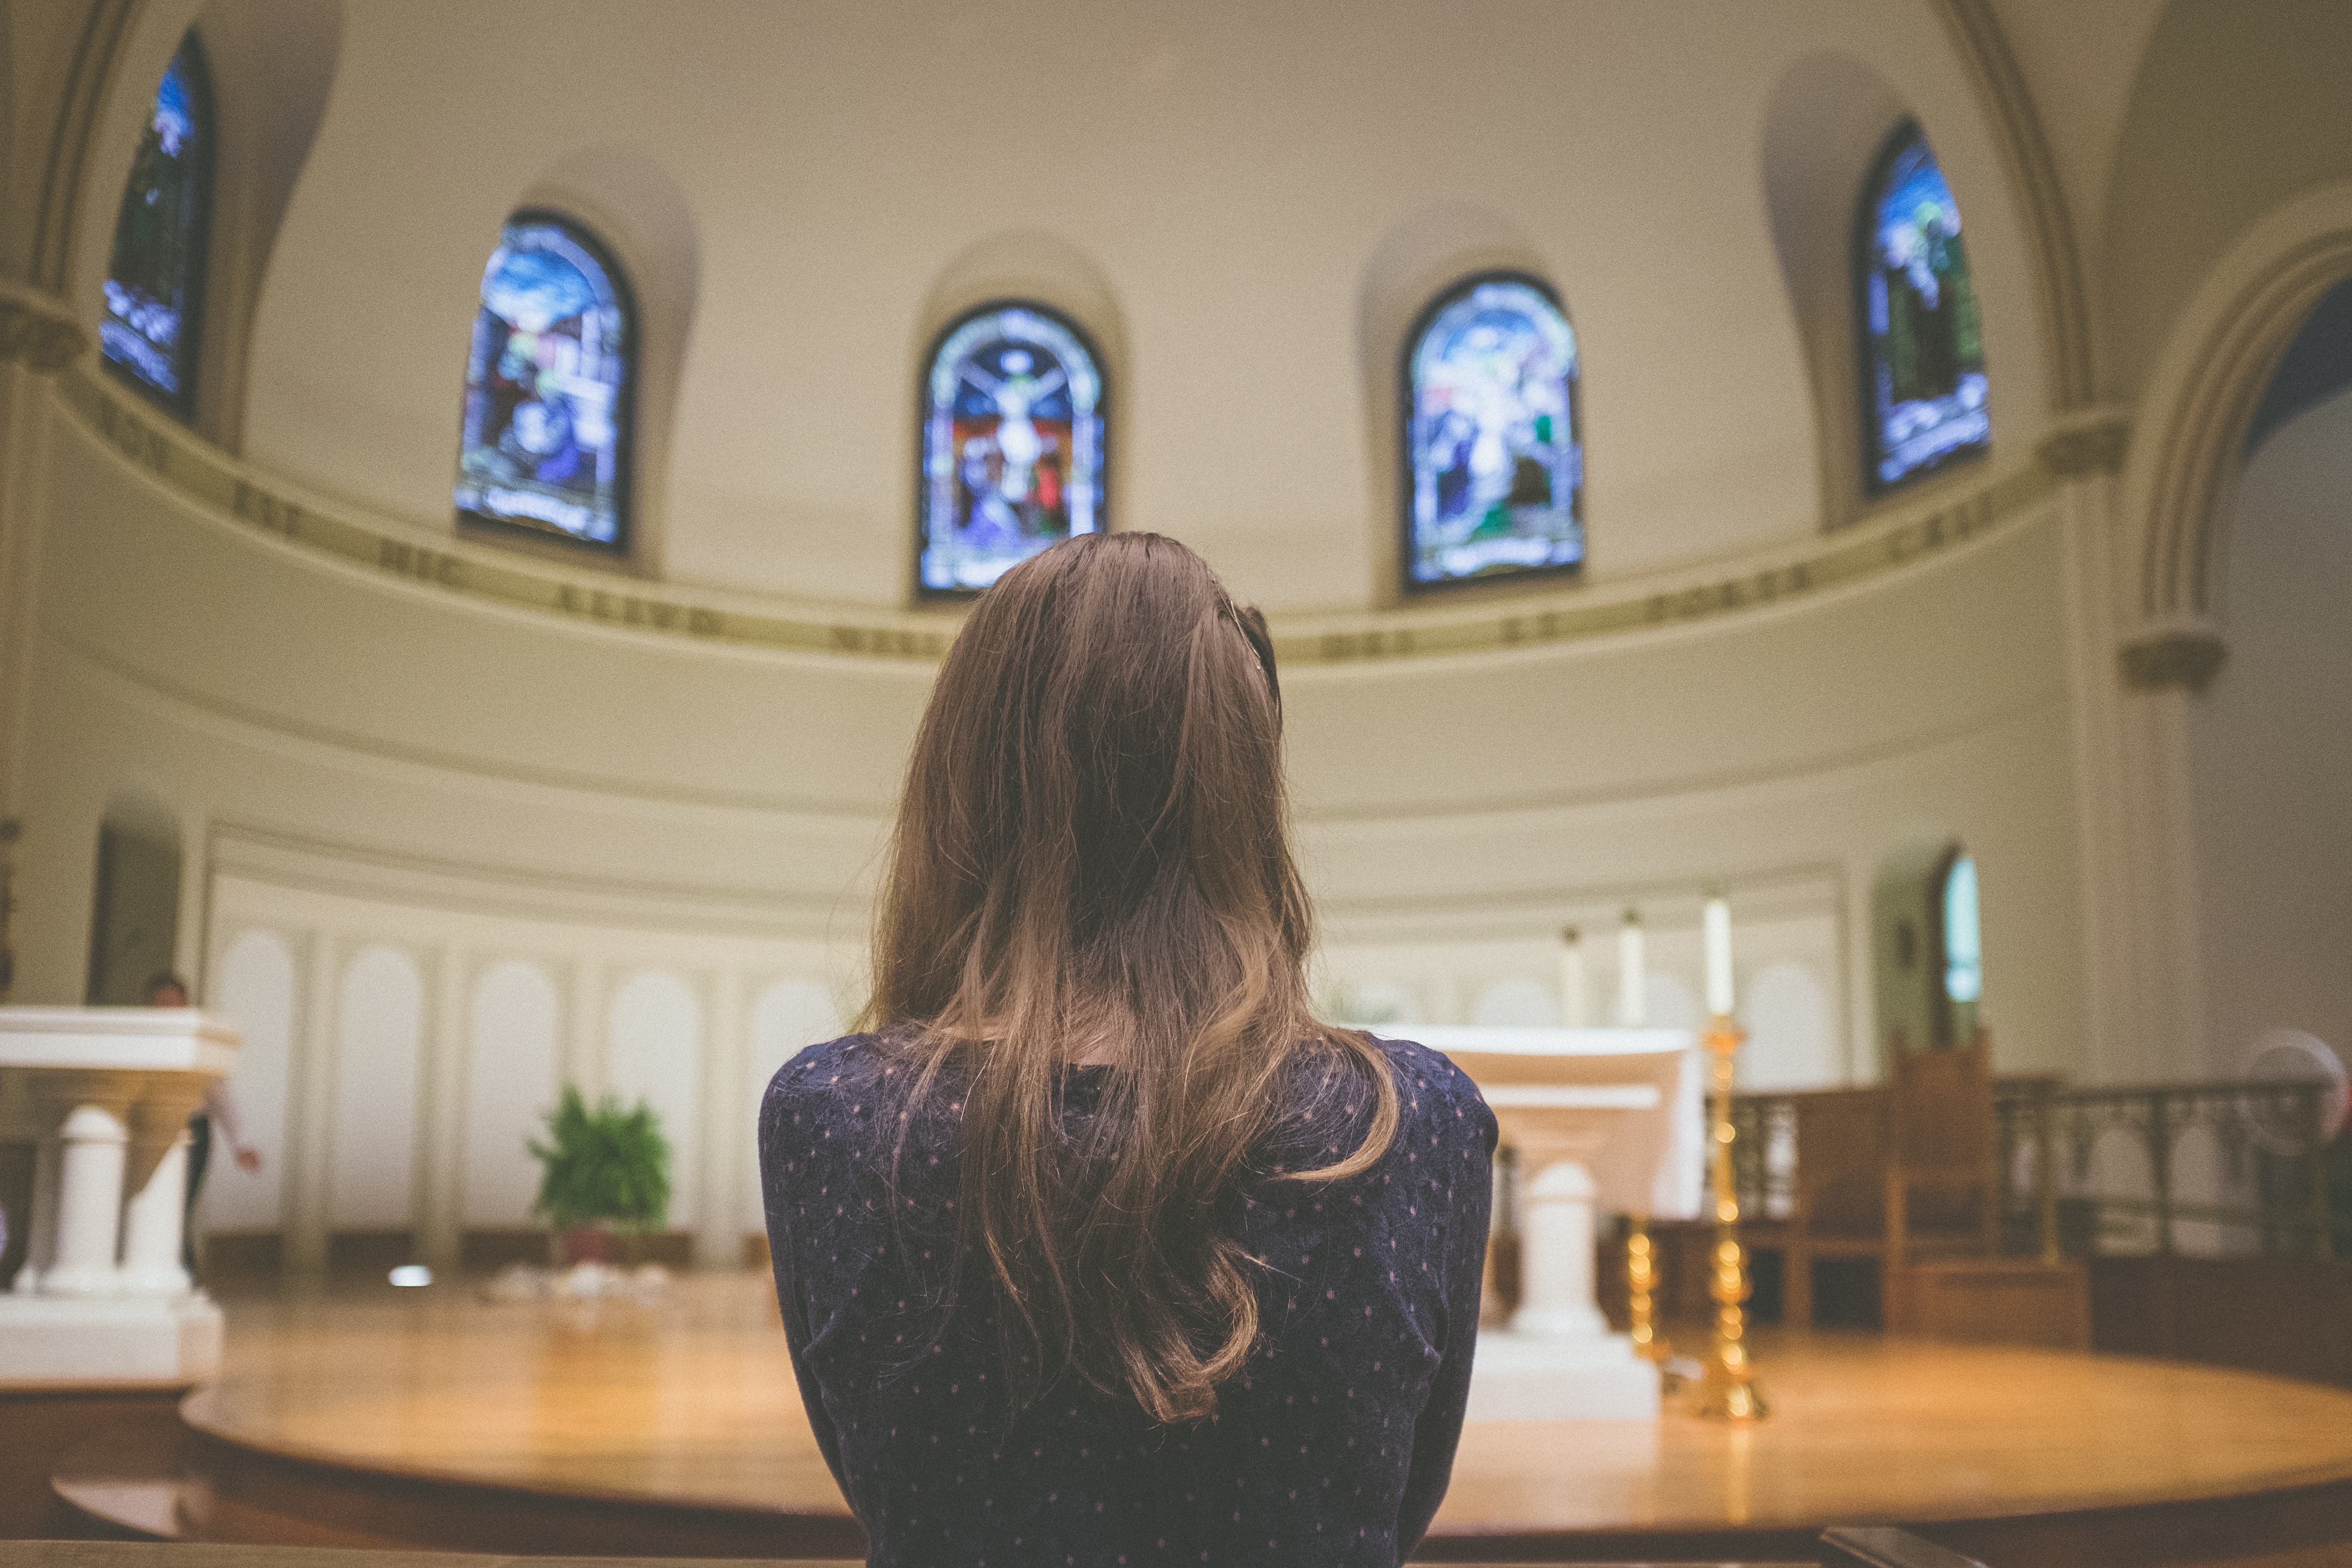 Image of a woman in a church